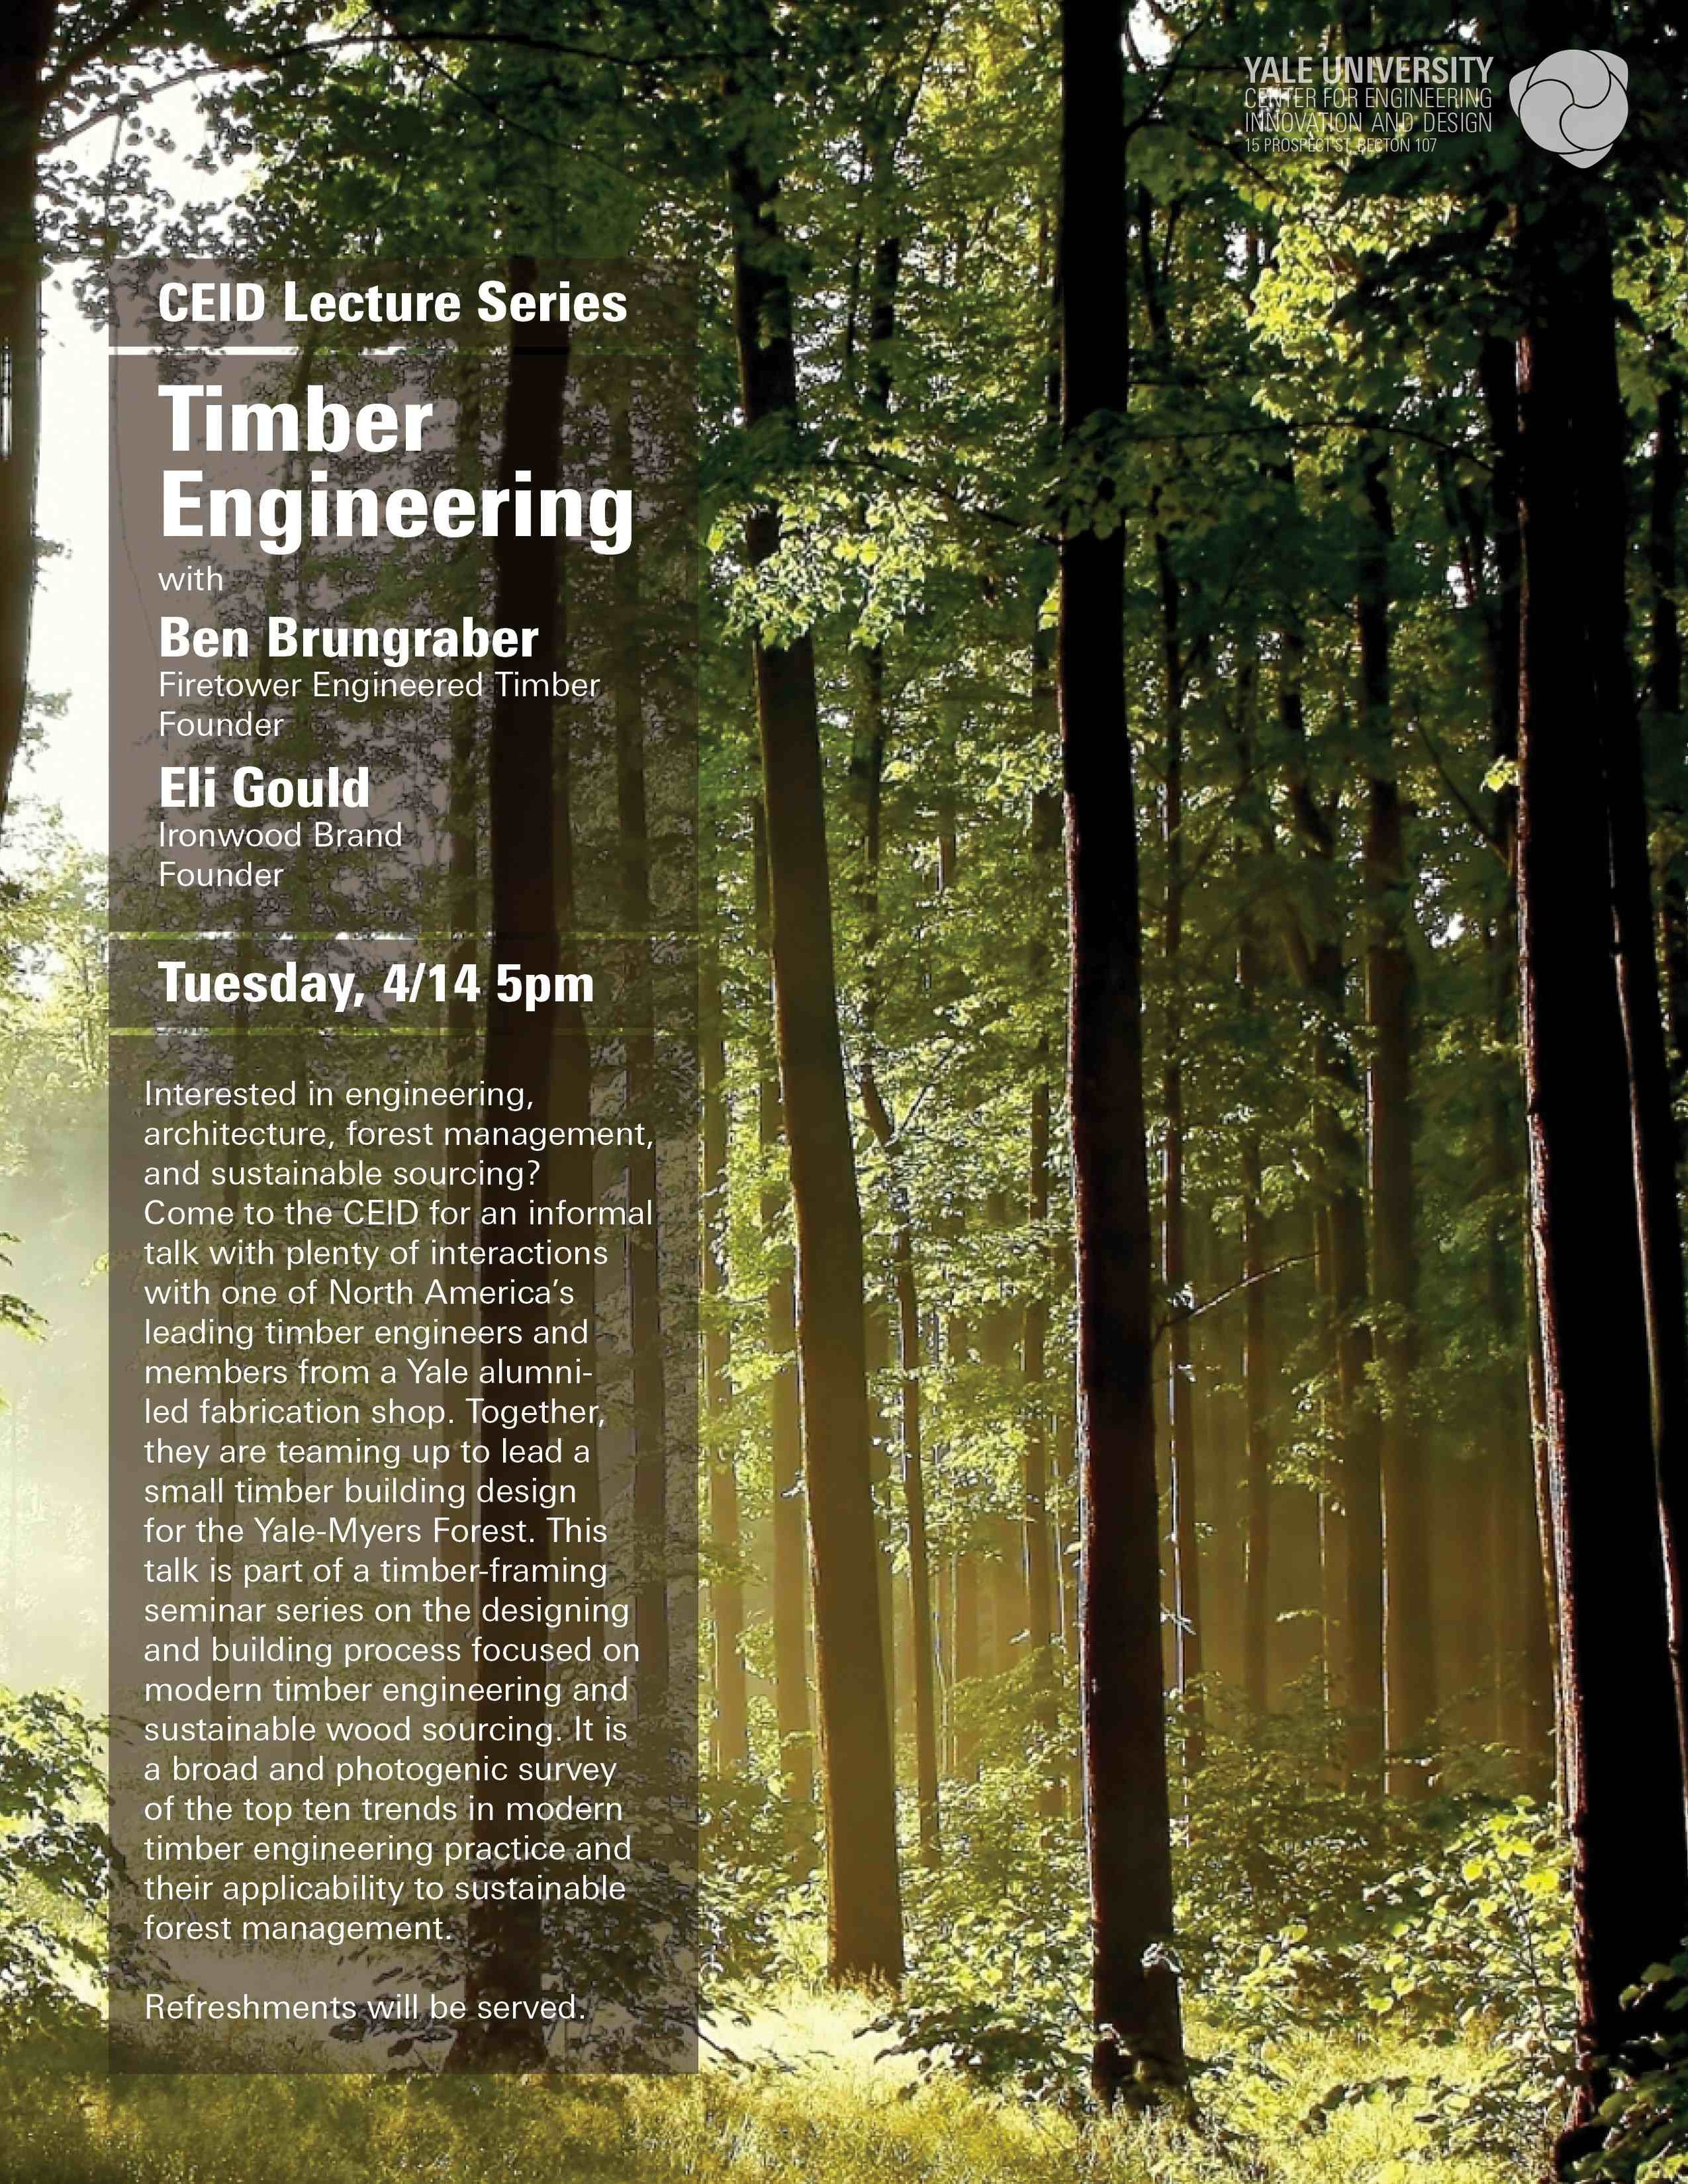 Ben Brungraber  (Firetower Engineered Timber, Founder)  Eli Gould  (Ironwood Brand, Founder)  Interested in engineering, architecture, forest management, and sustainable sourcing? Come to the CEID for an informal talk with plenty of interactions with one of North America's leading timber engineers and members from a Yale alumni-led fabrication shop. Together, they are teaming up to lead a small timber building design for the Yale-Myers Forest. This talk is part of a timber-framing seminar series on the designing and building process focused on modern timberengineering and sustainable wood sourcing. It is a broad and photogenic survey of the top ten trends in modern timber engineering practice and their applicability to sustainable forest management.